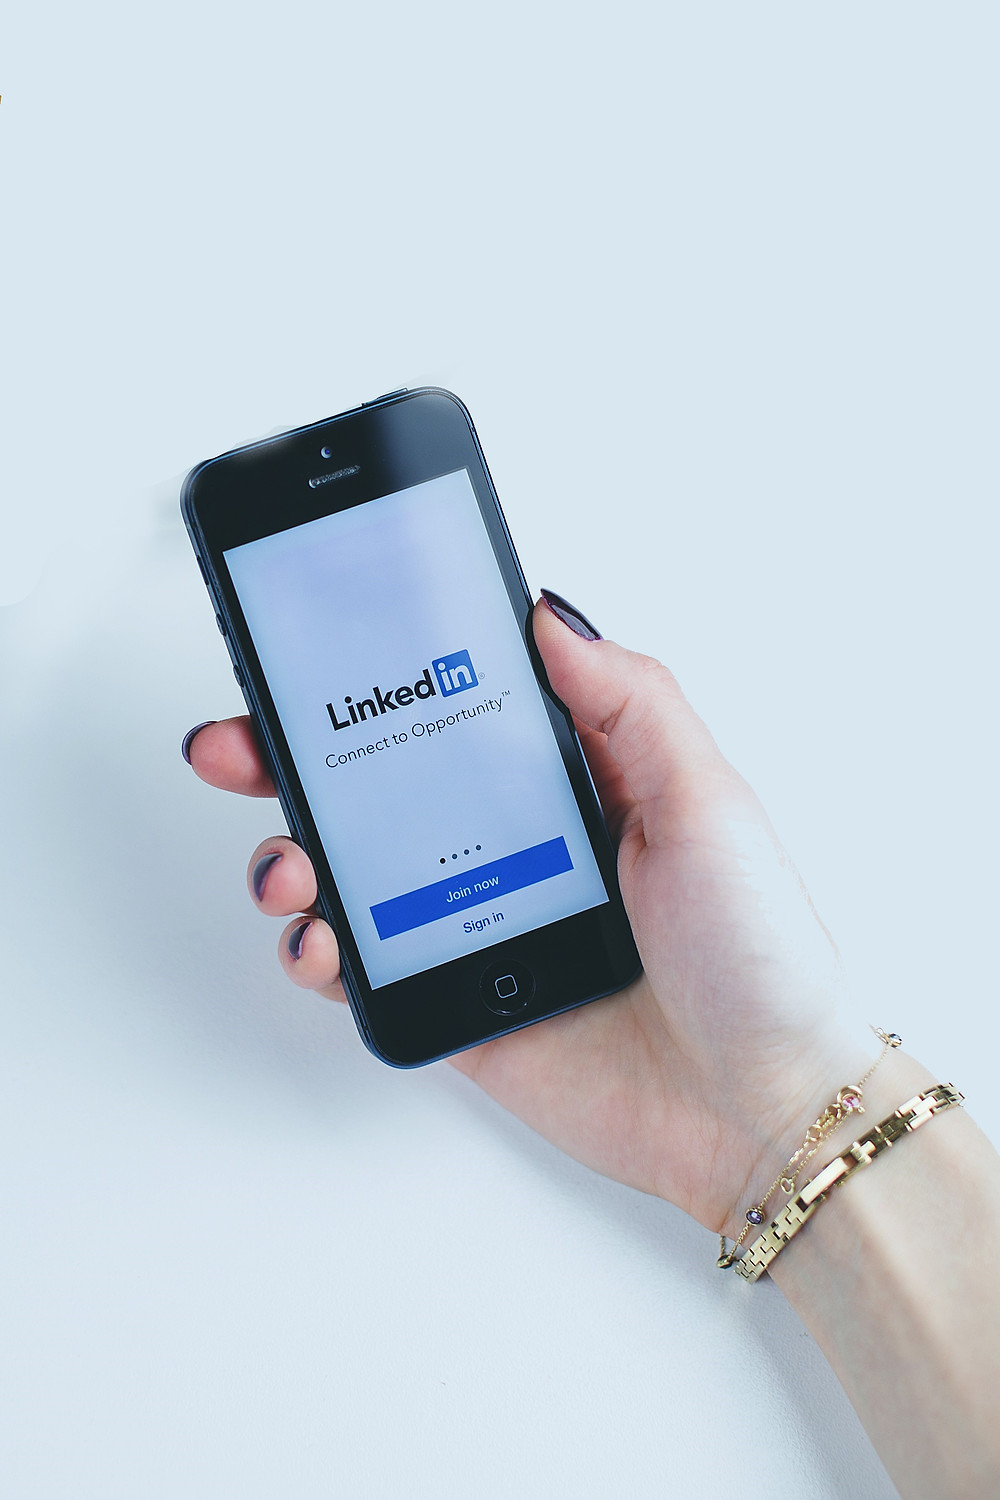 LinkedIn site opened on a mobile device.